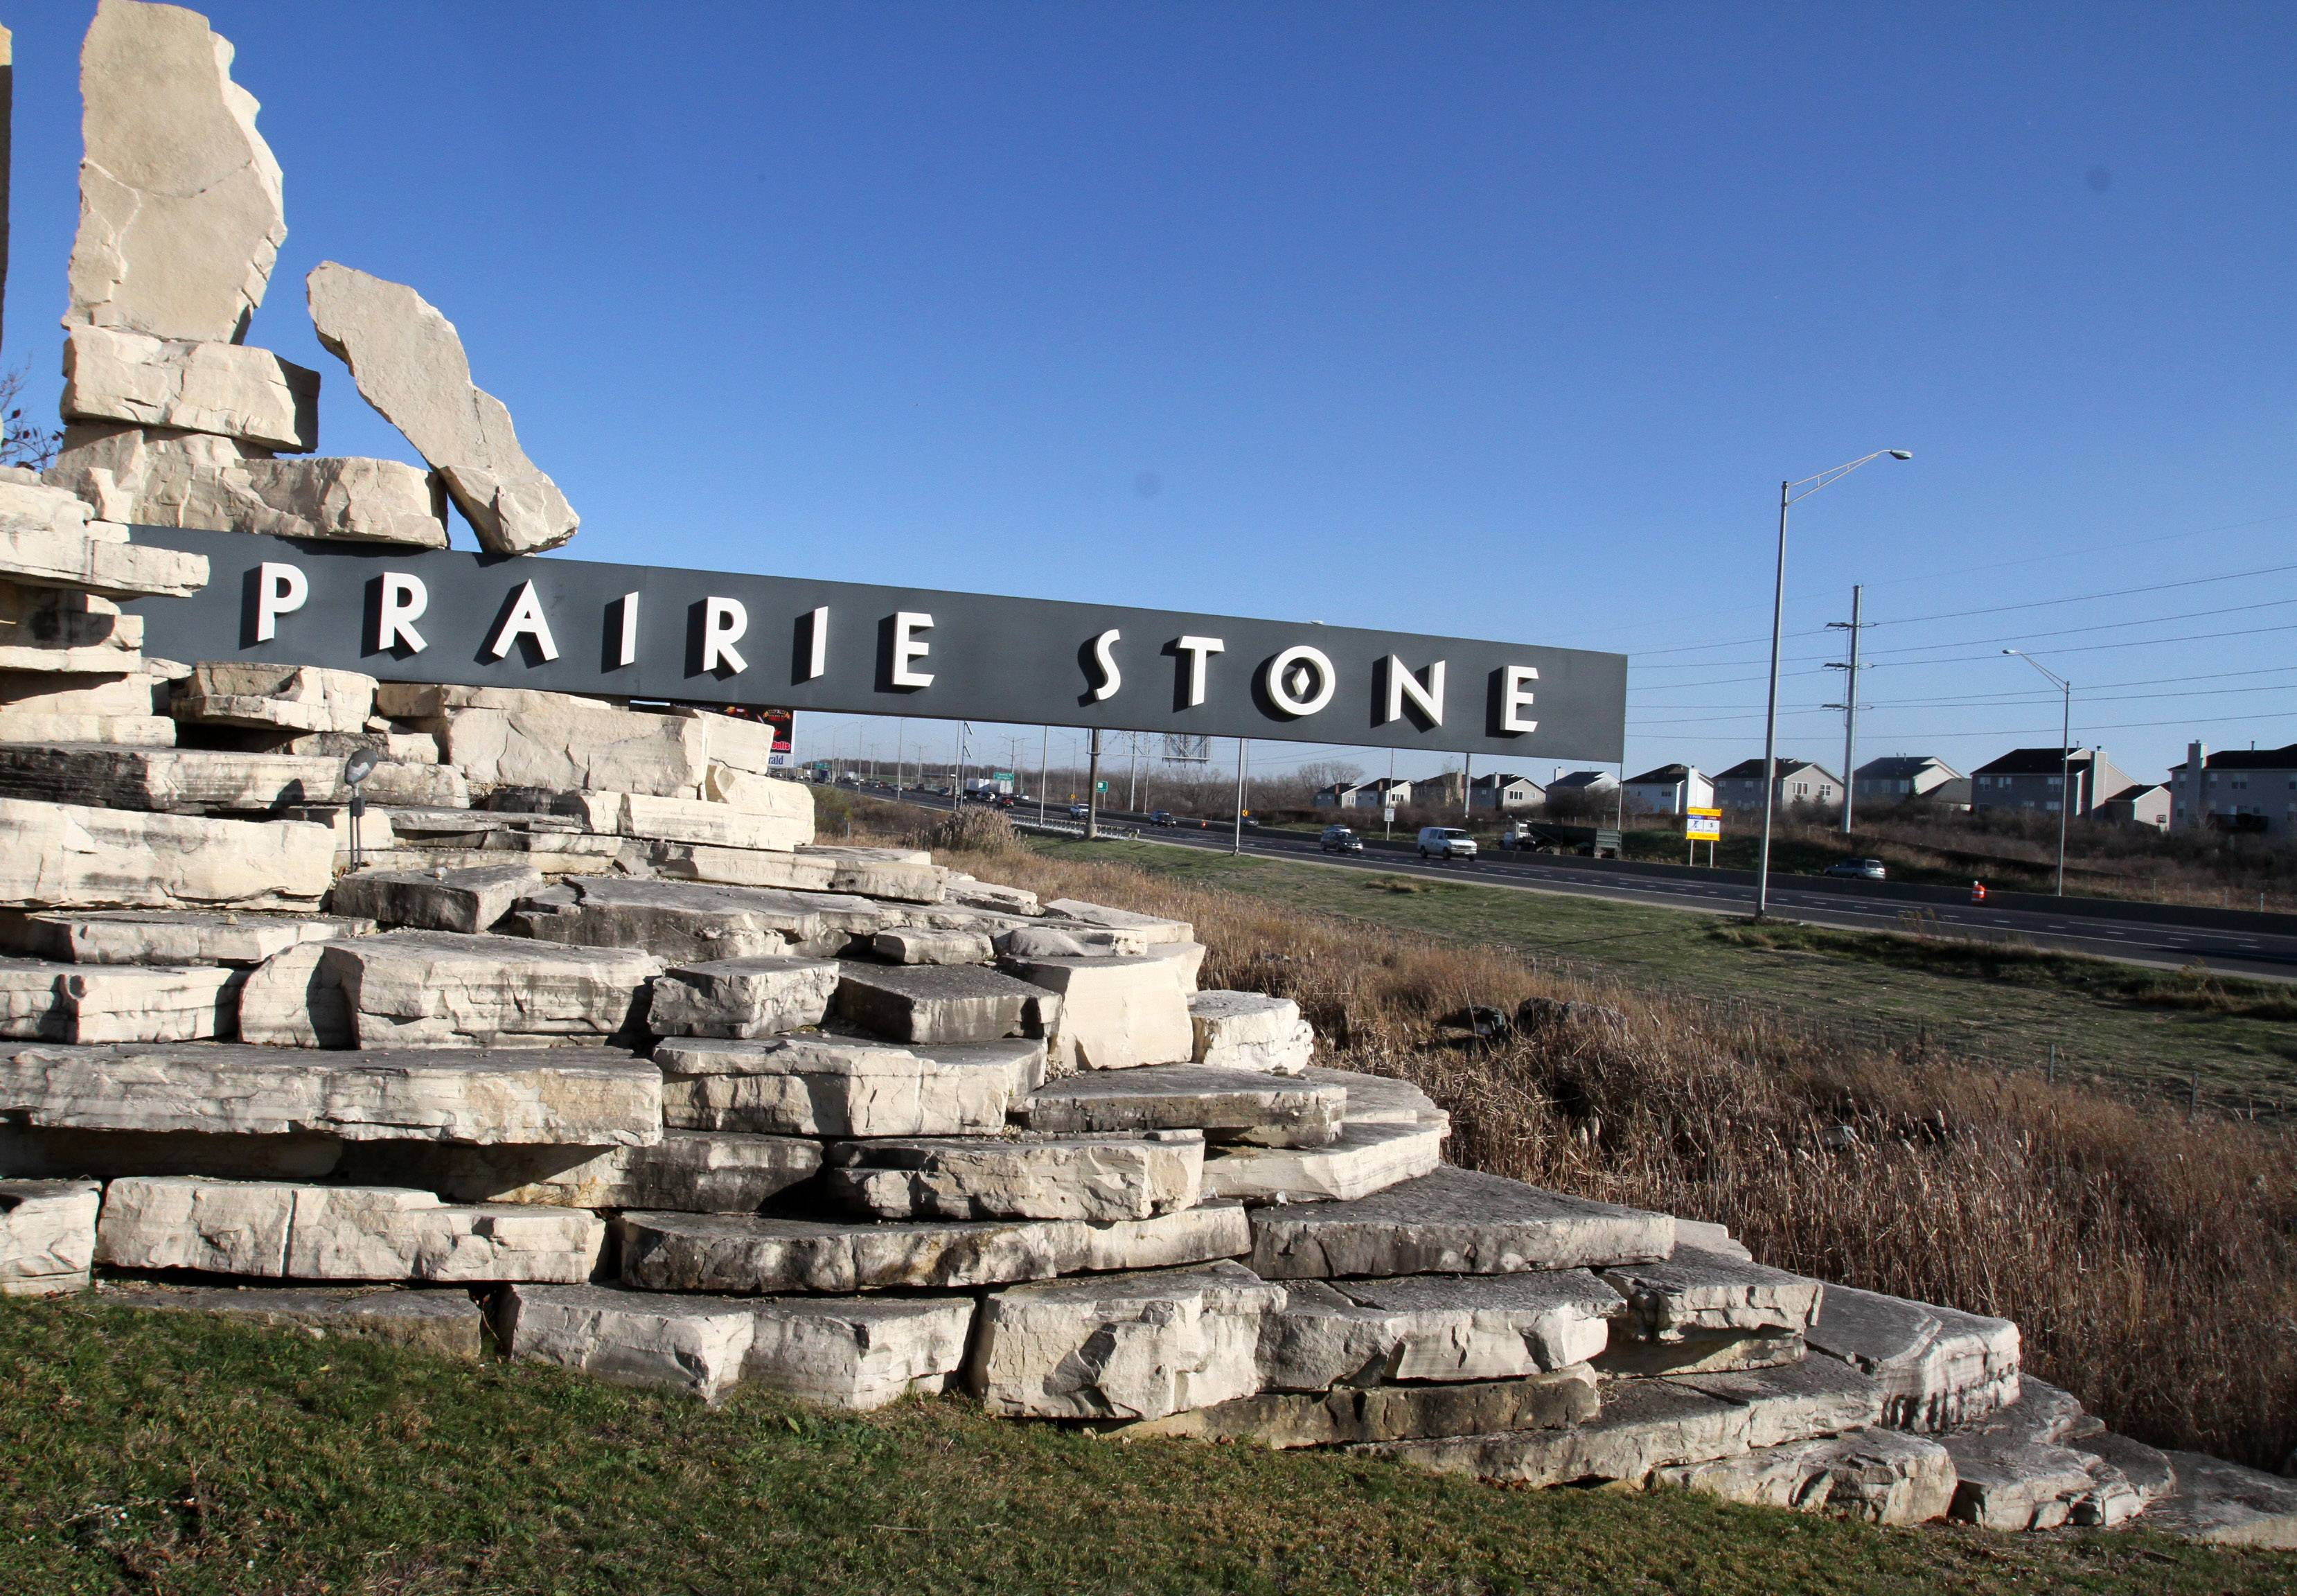 Beer garden coming to Prairie Stone Business Park in Hoffman Estates